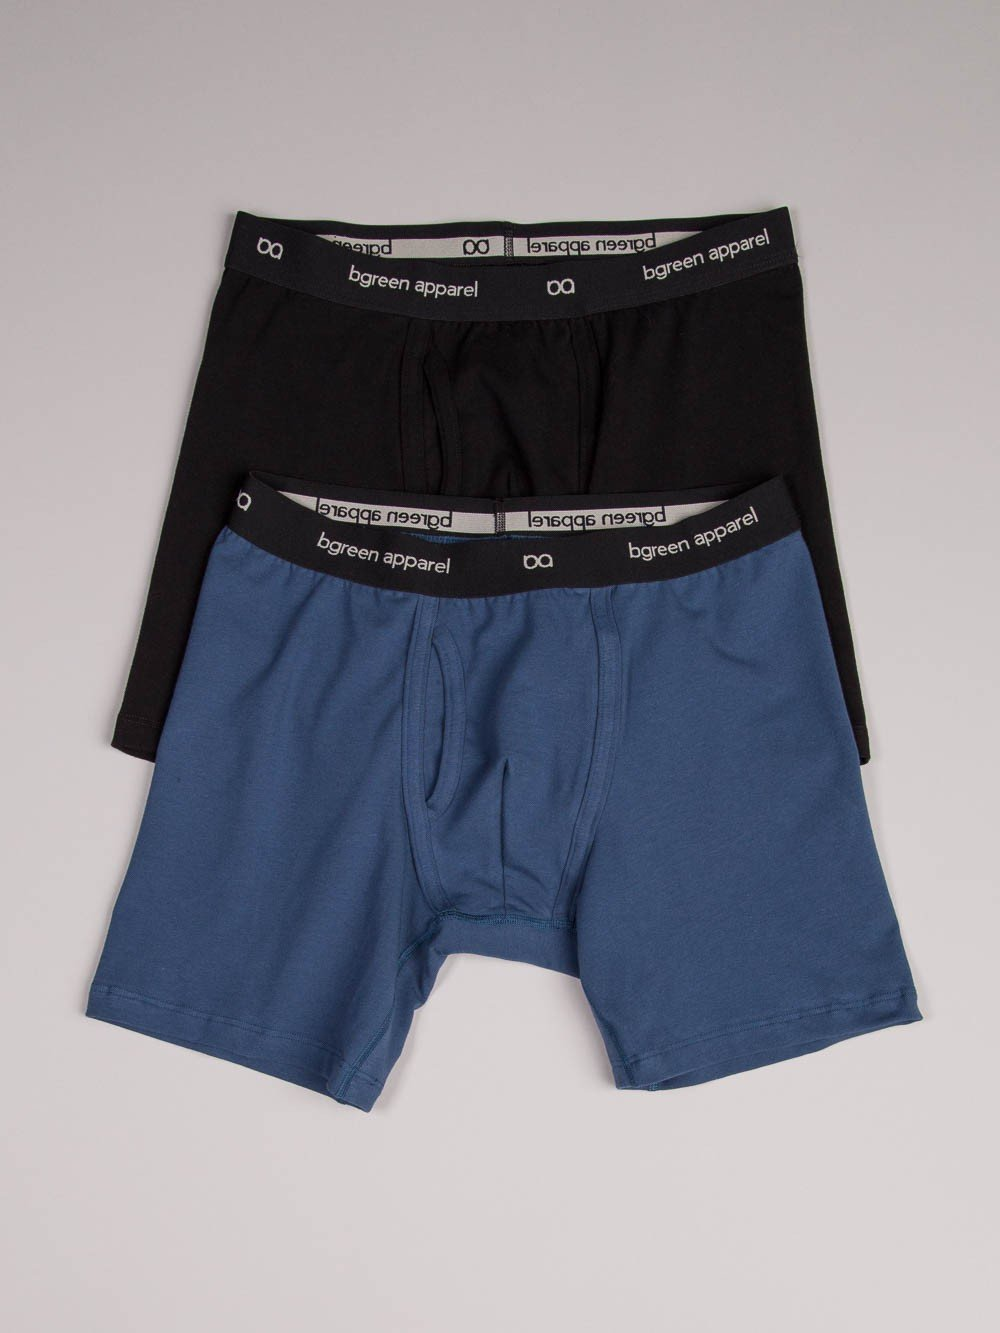 bgreen apparel - Made in the USA, boxer briefs in organic cotton.